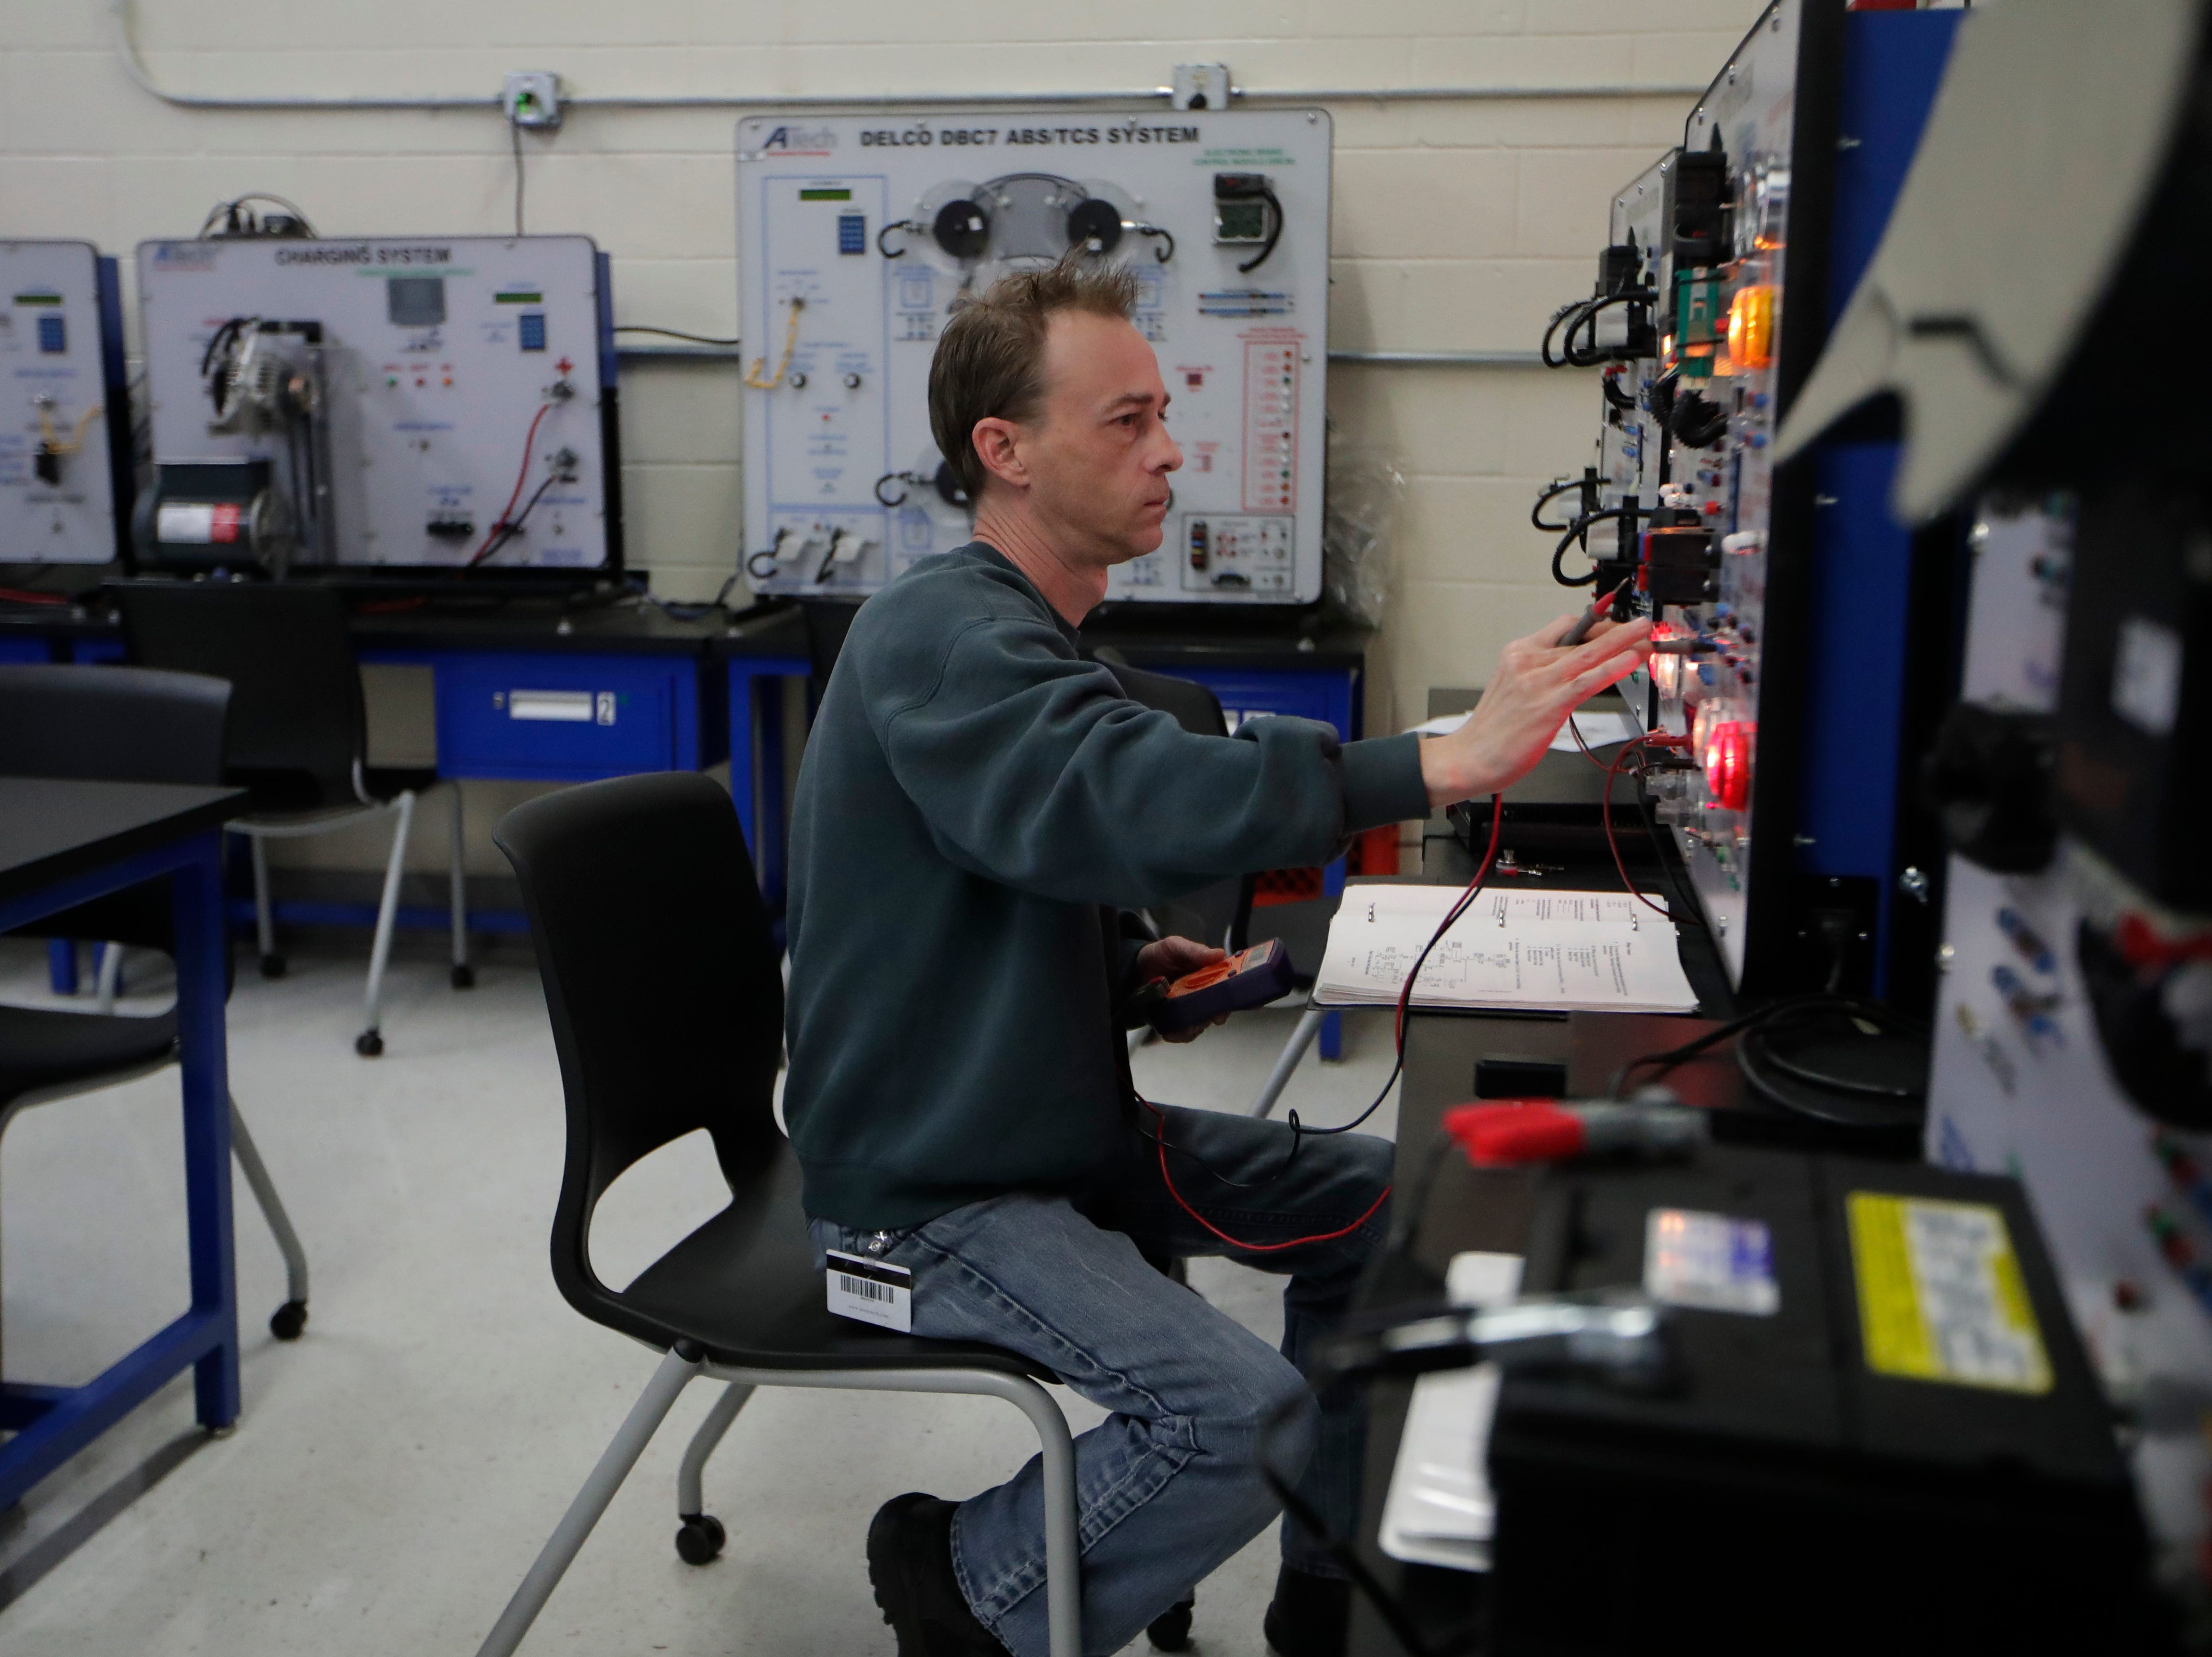 John Horne, an automotive services technology program student, works with a headlamp model trainer Wednesday, Jan. 9, 2019 at Lively Technical Center which has been approved by the Leon County School Board to change it's name to Lively Technical College.